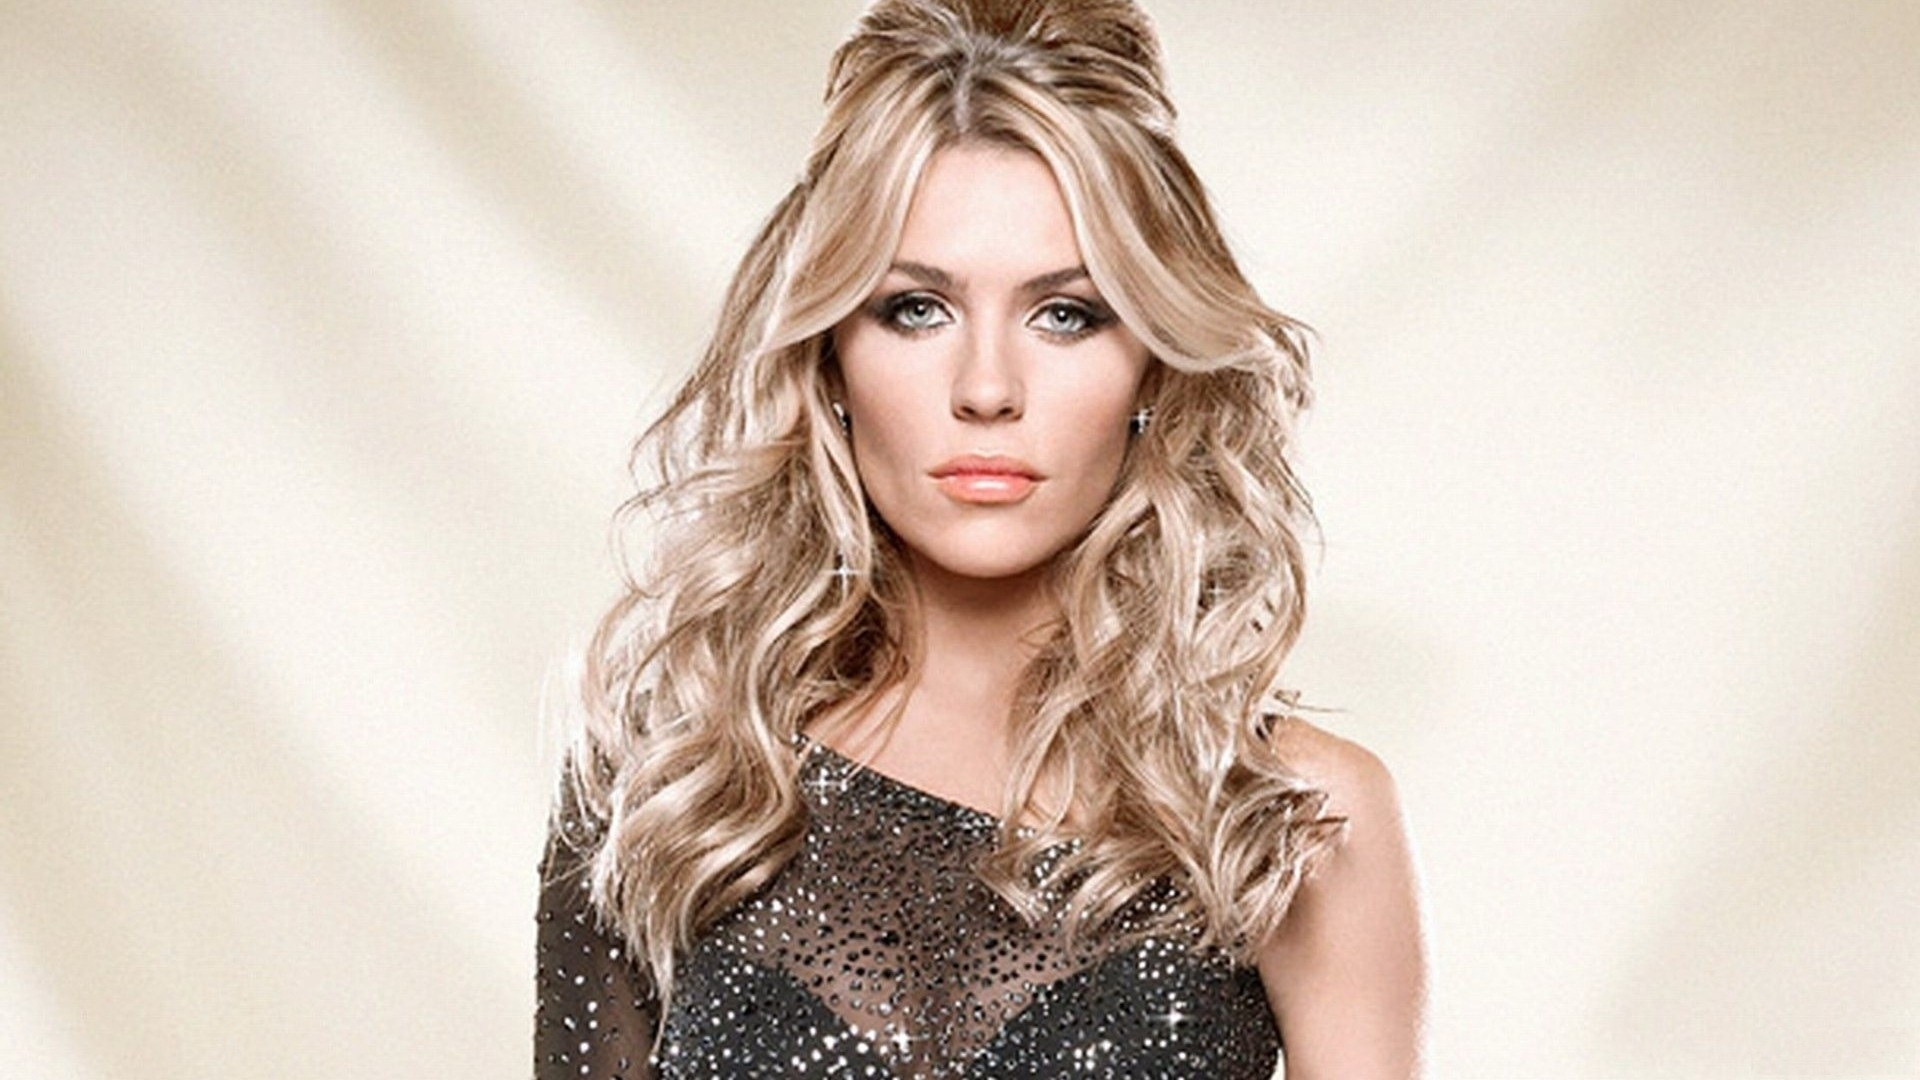 clancy online dating Abigail clancy biography, pictures, credits,quotes and more most known for dating football star, peter crouch, abigail came second.